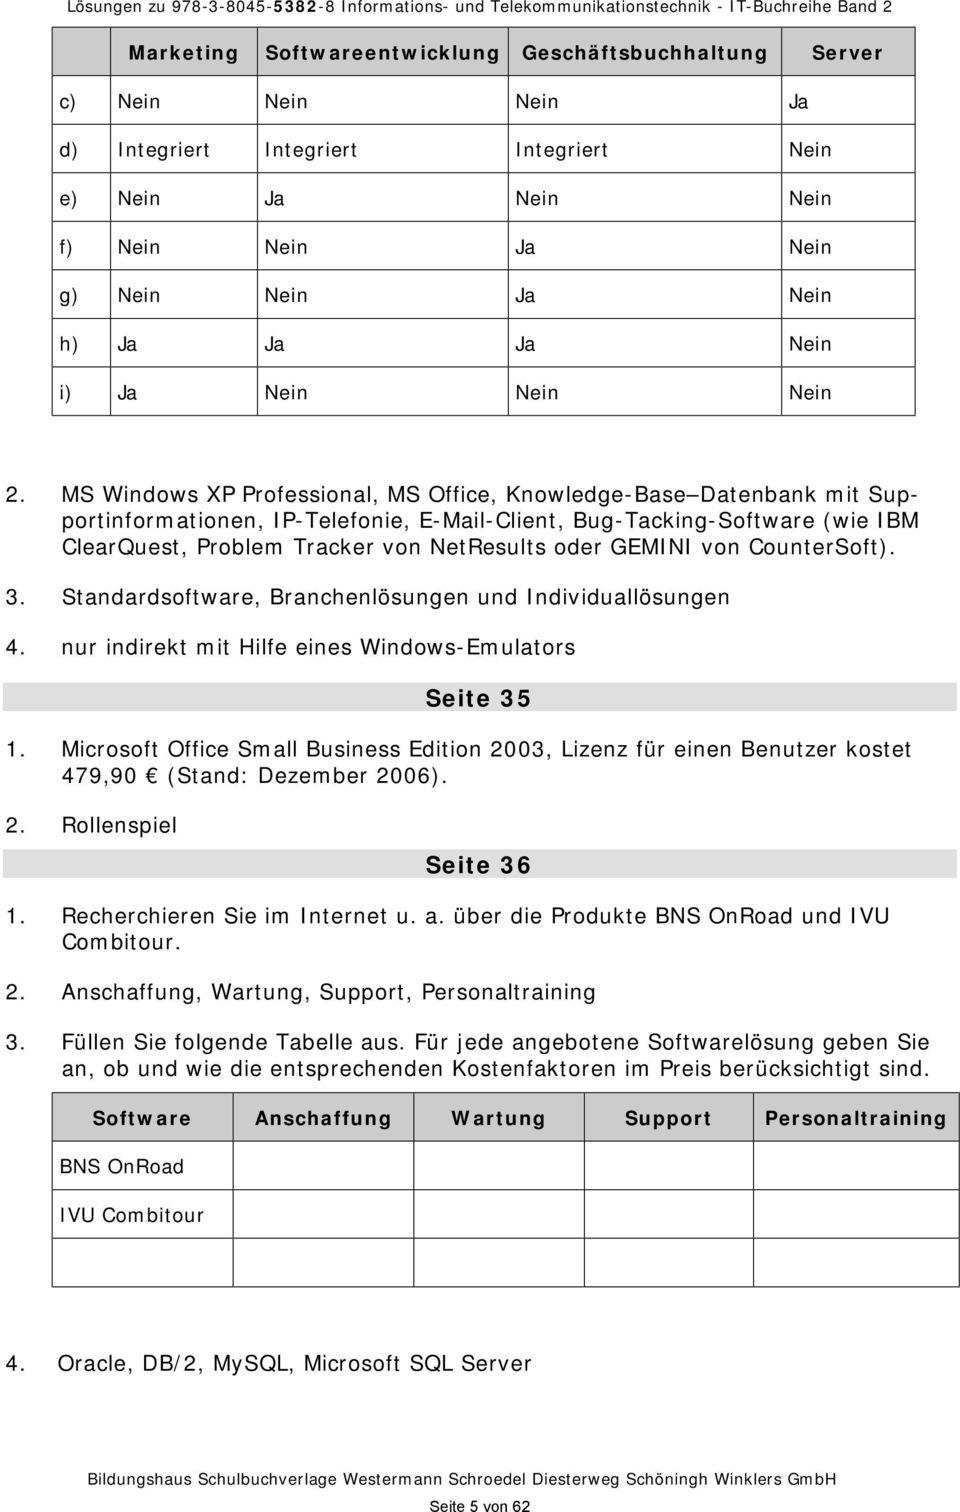 MS Windows XP Professional, MS Office, Knowledge-Base Datenbank mit Supportinformationen, IP-Telefonie, E-Mail-Client, Bug-Tacking-Software (wie IBM ClearQuest, Problem Tracker von NetResults oder